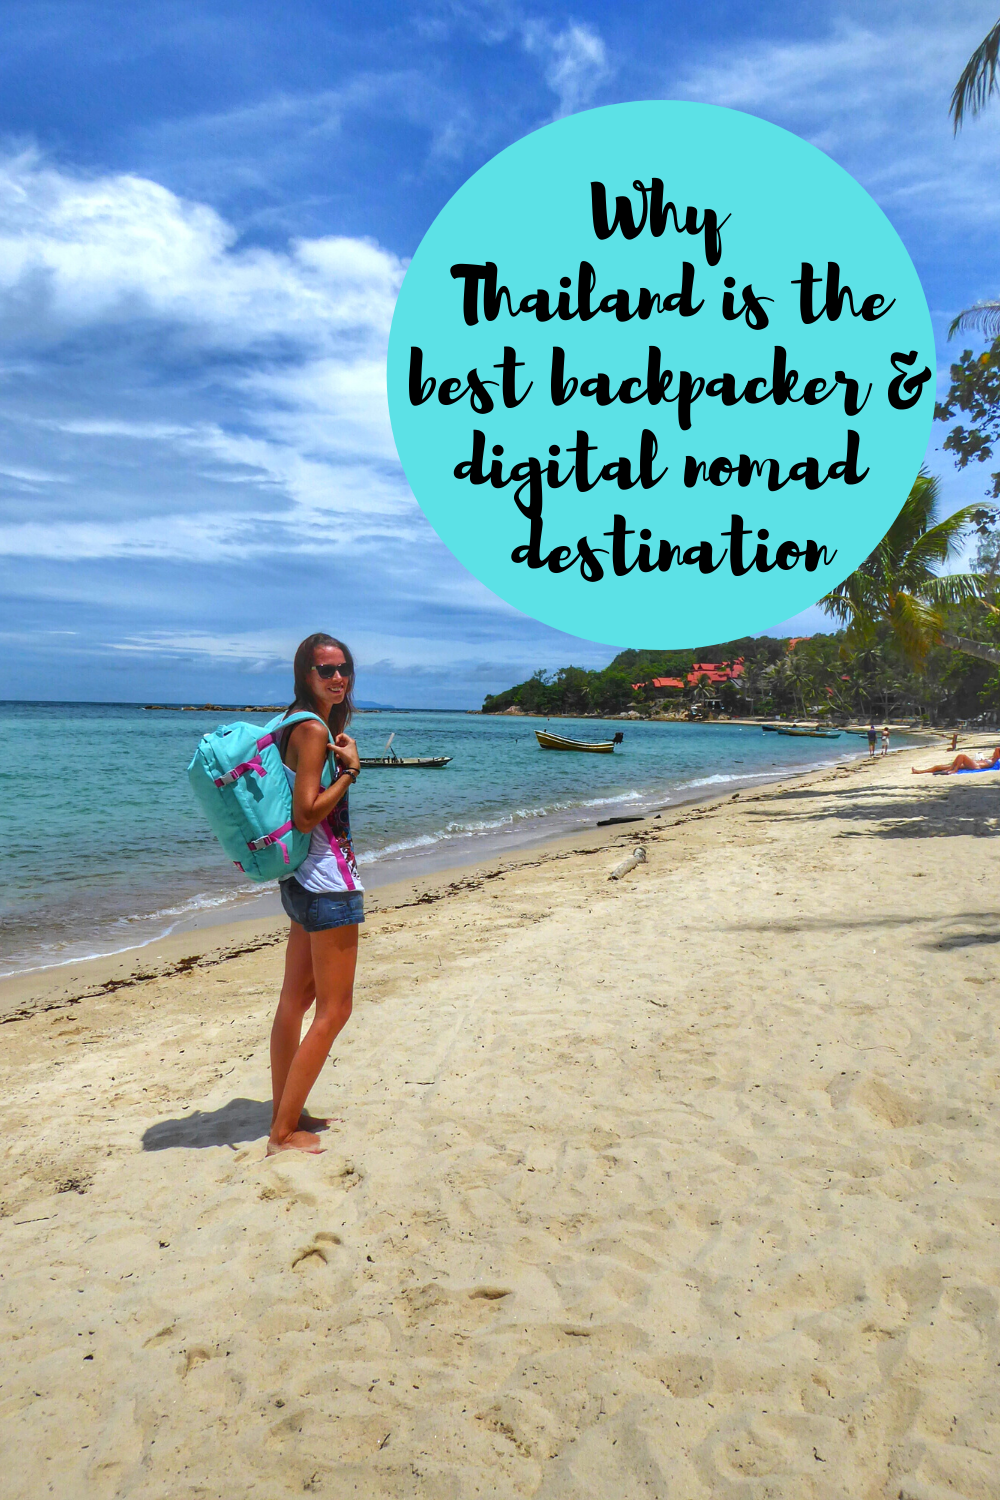 Why Thailand is the perfect backpacker and digital nomad destination (1)